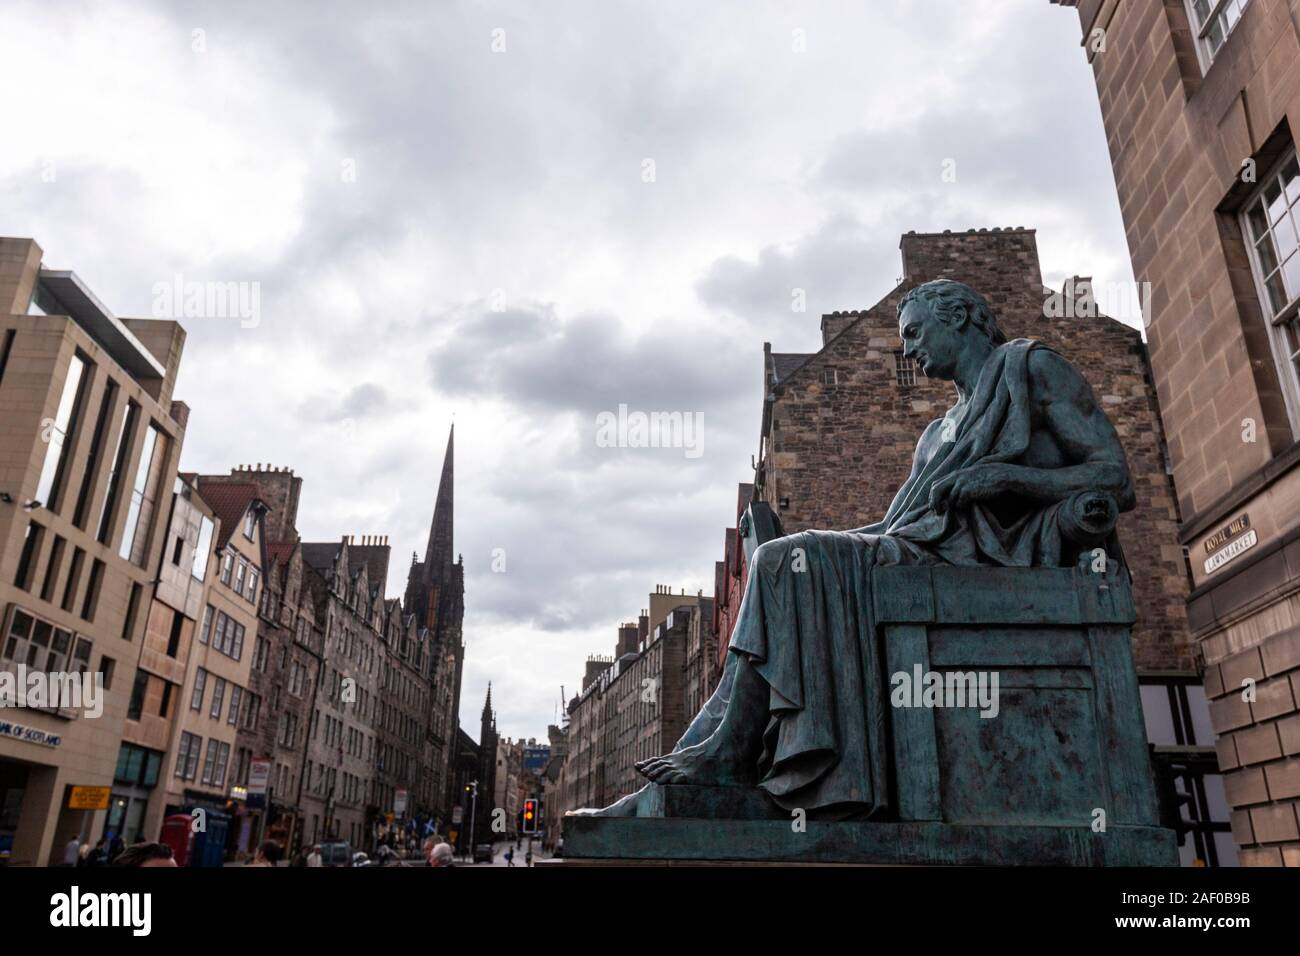 David Hume statue on Royal Mile, sited outside the High Court on Lawnmarket, Edinburgh, Scotland, UK Stock Photo